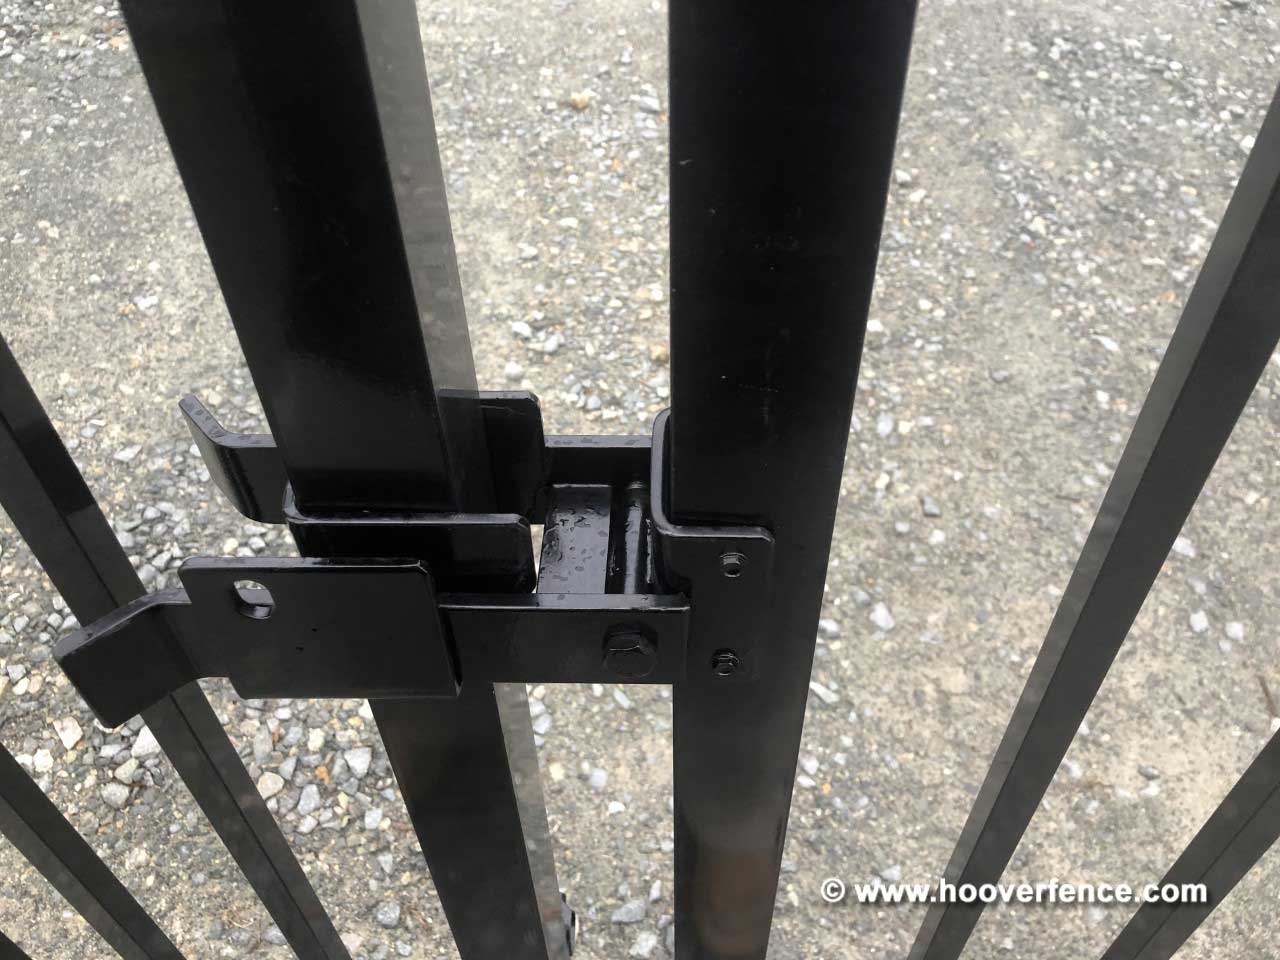 Customer Install - DAC-4090-B Installed on Black Metal Gate - Wilmington, NC